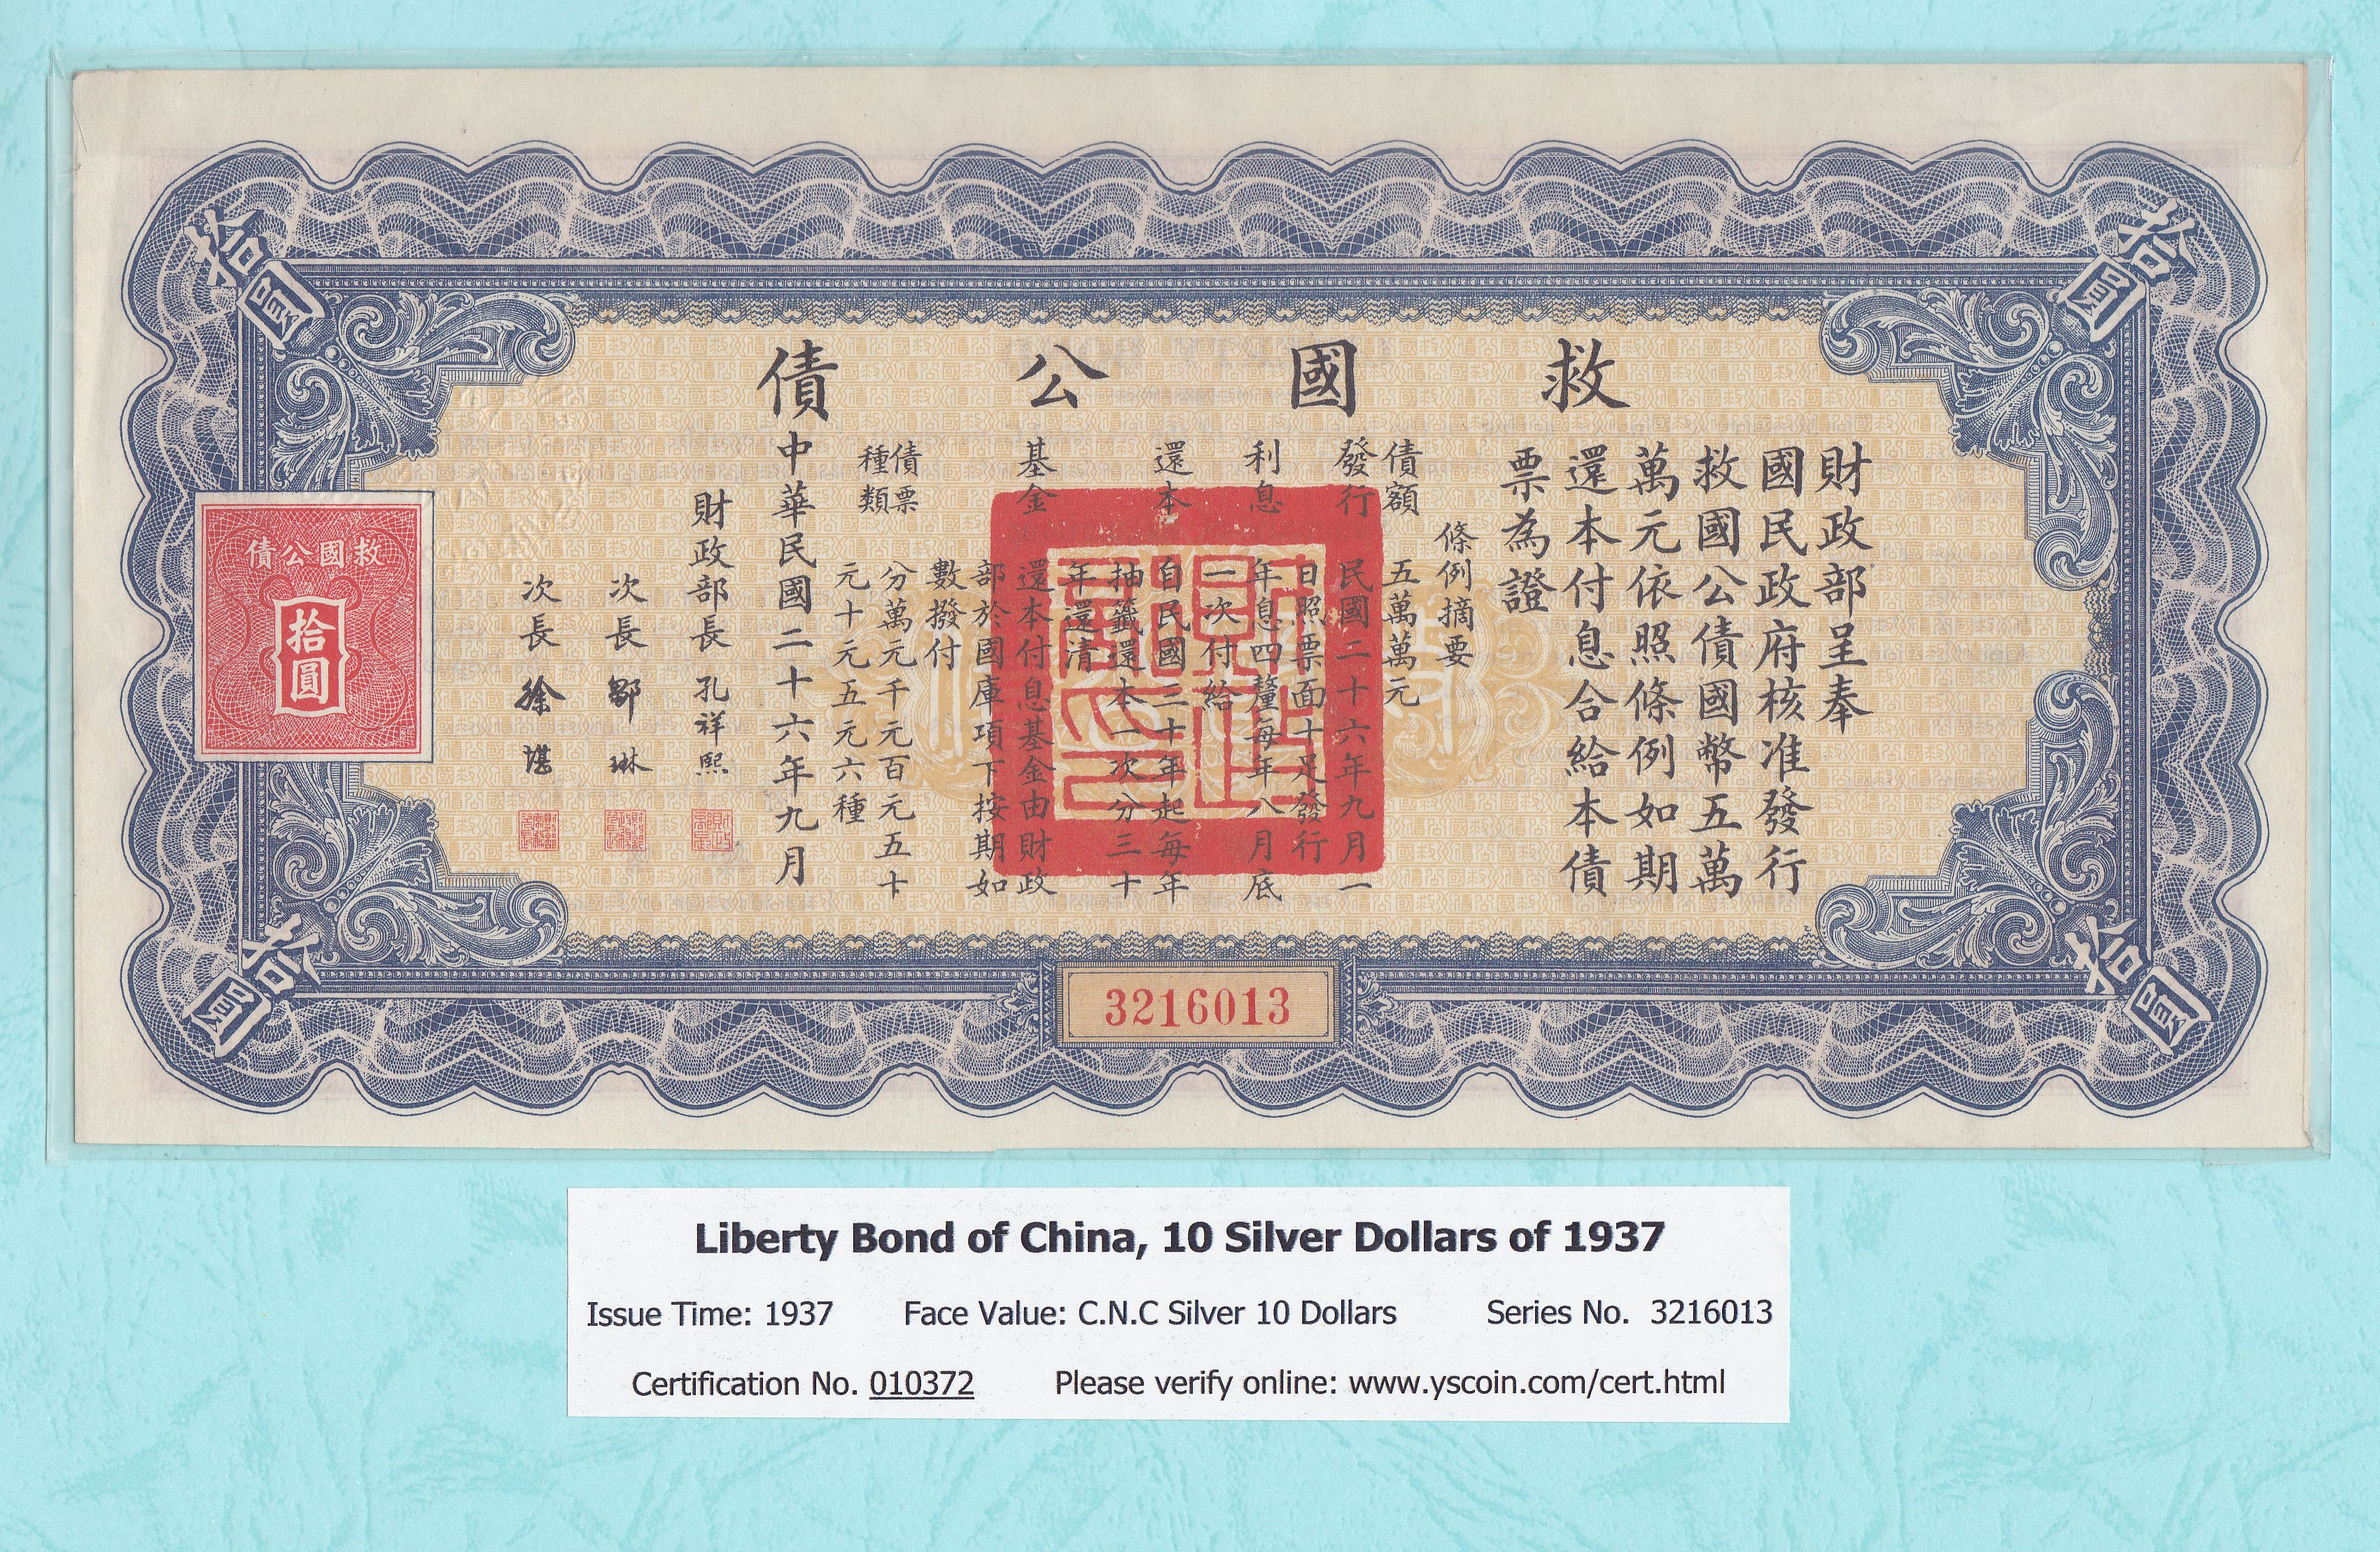 010372, Liberty Bond of China, 10 Silver Dollars of 1937